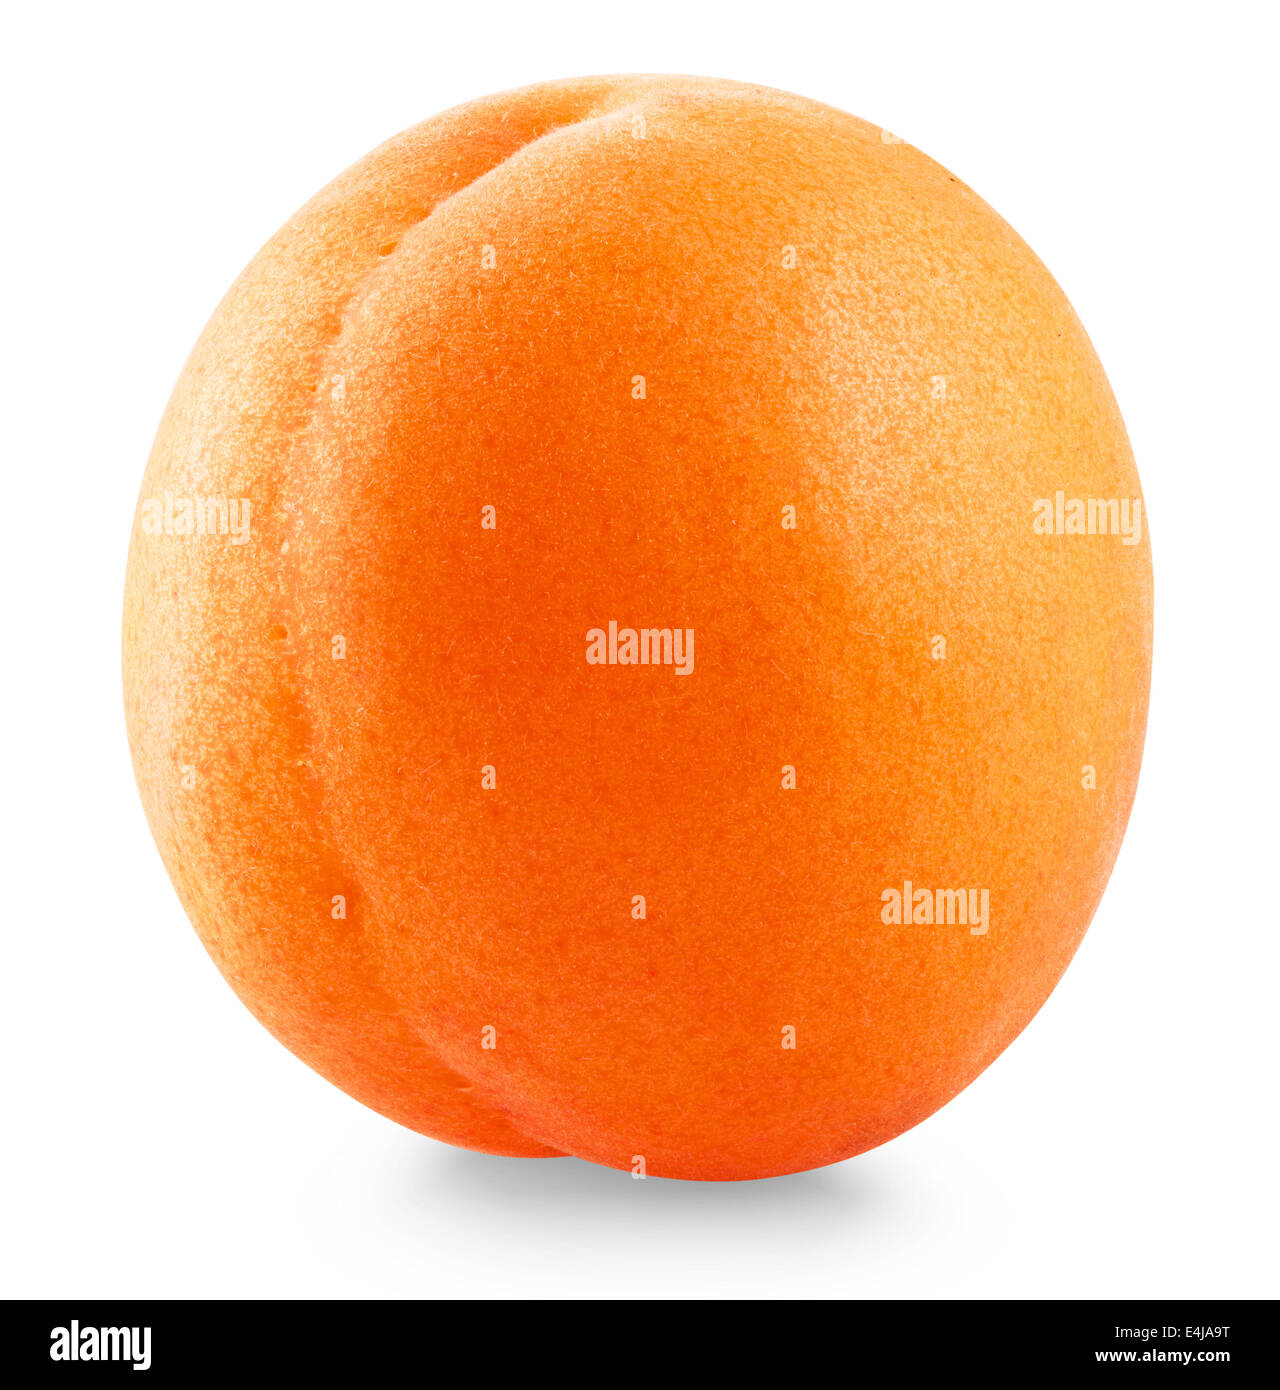 Apricot fruit isolated on white background. Clipping Path - Stock Image